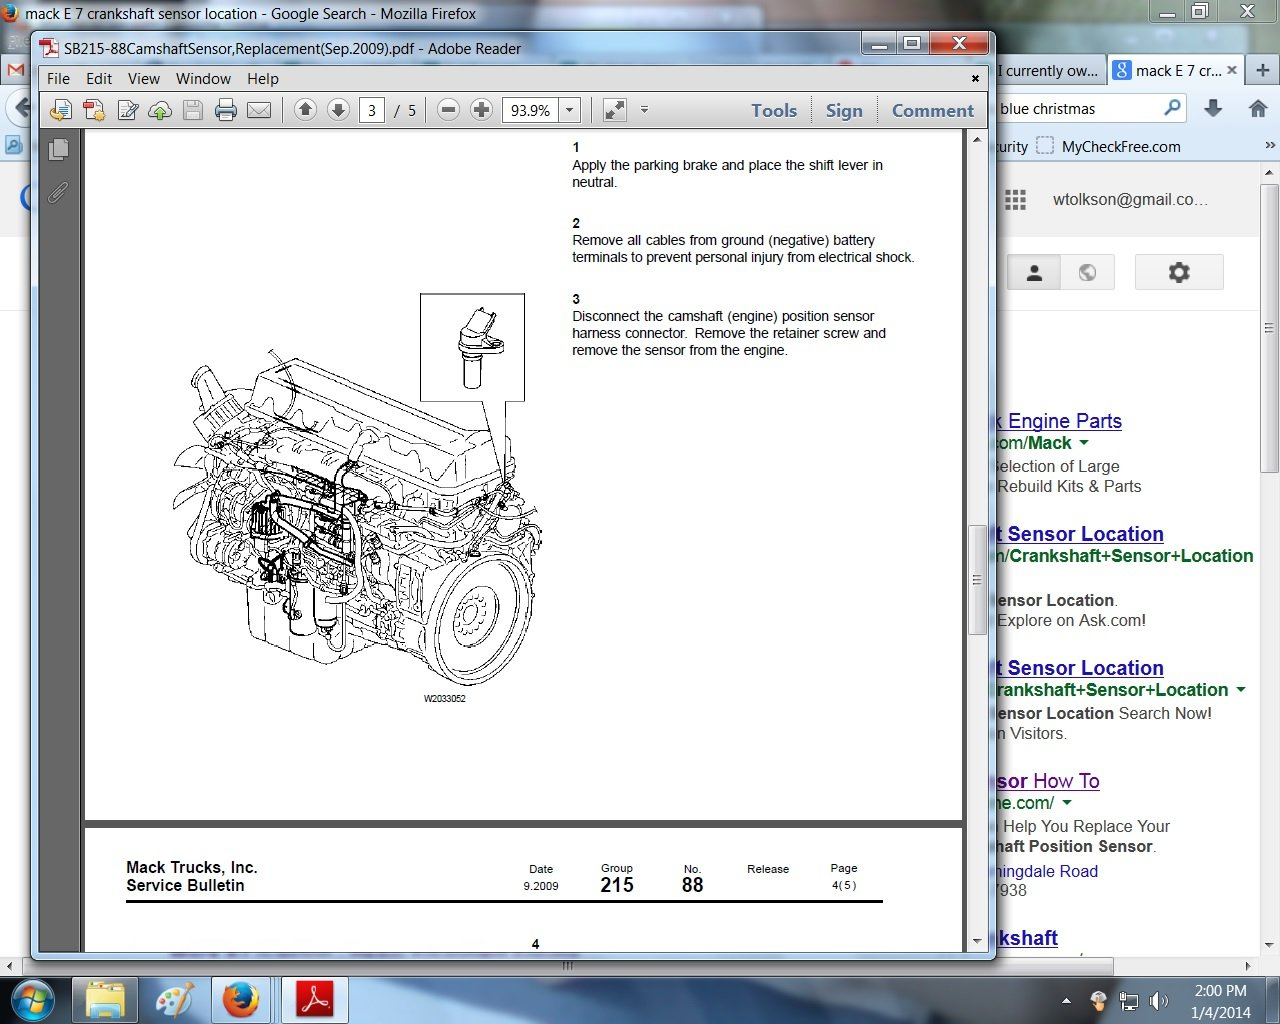 1998 chevy 350 engine diagram i have a 1997 mack truck it has a e7-350 engine it starts ... e7 350 engine diagram